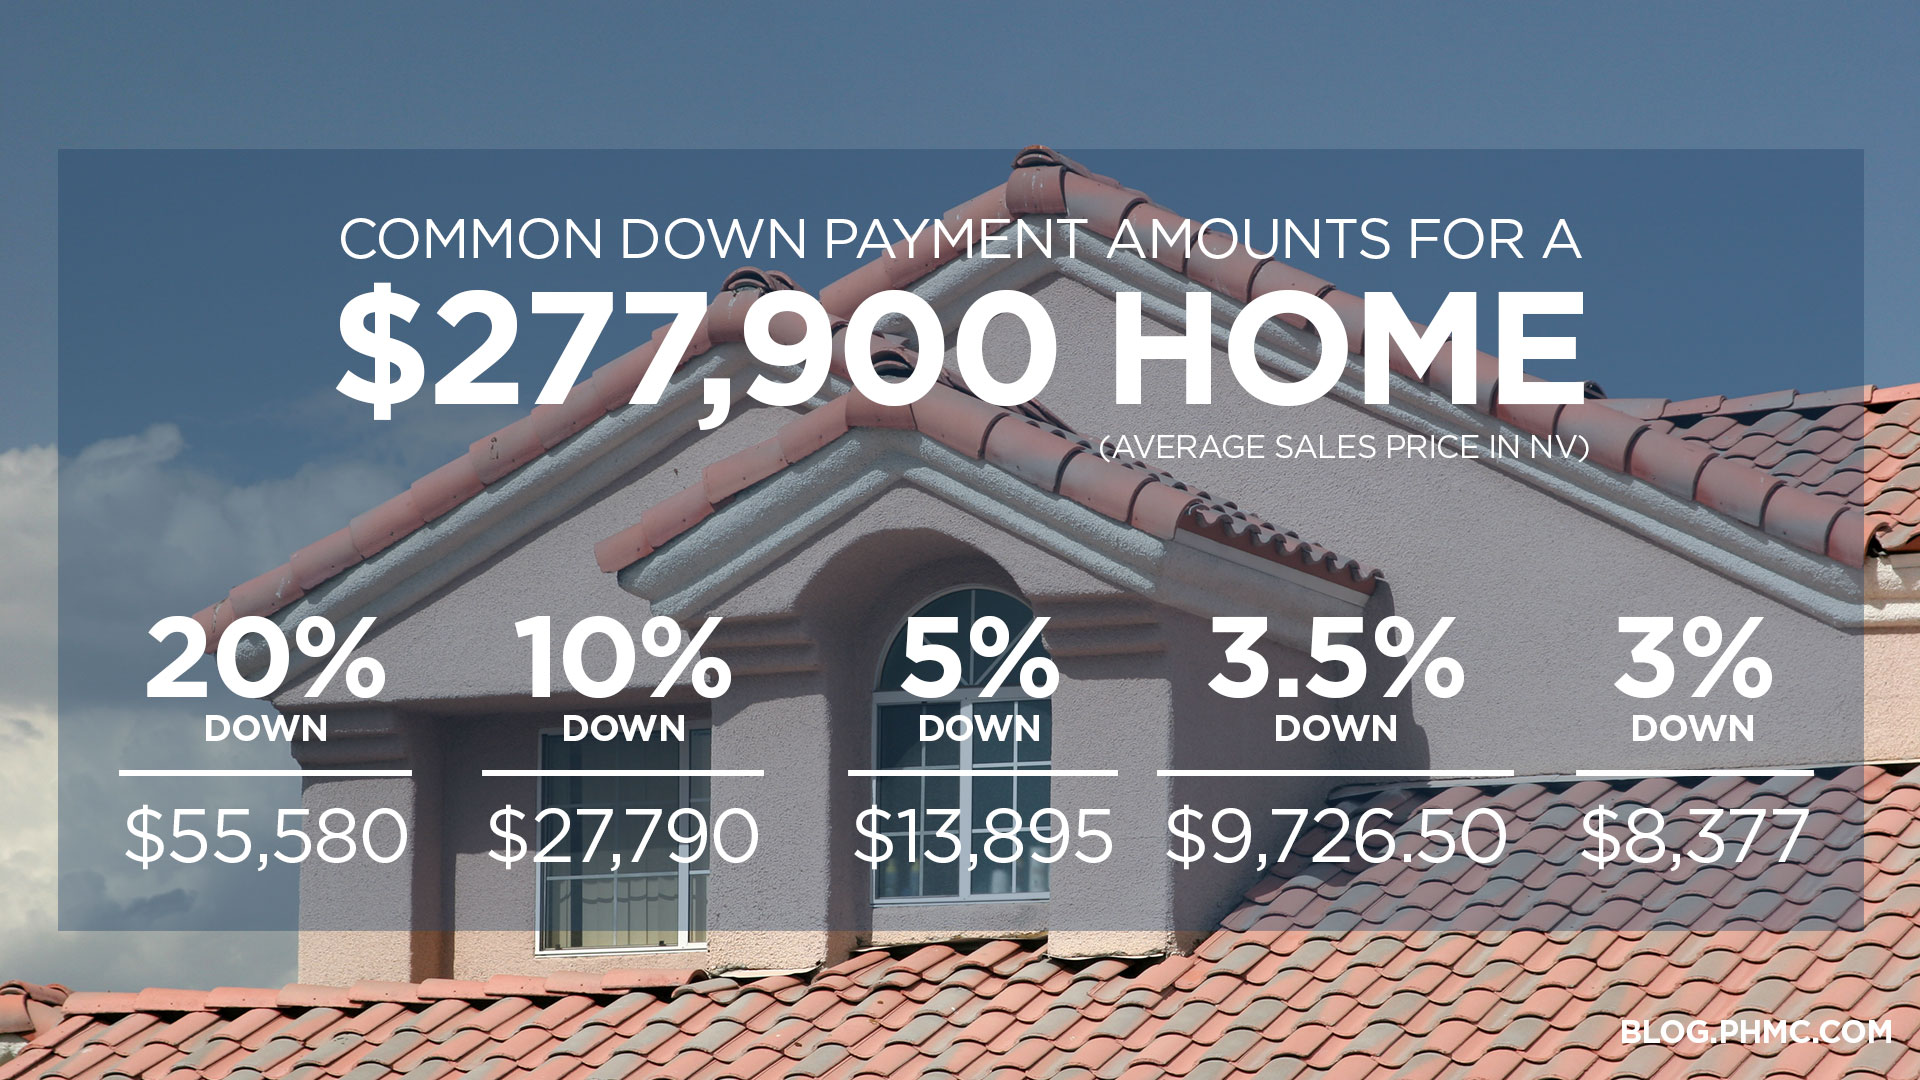 Common down payment amounts for a $277,900 home (average sales price in NV) 20% down = $55,580 10% down = $27,790 5% down =$13,895 3.5% down = $9,726.50 3% down = $8,377 Find this image on blog.phmc.com